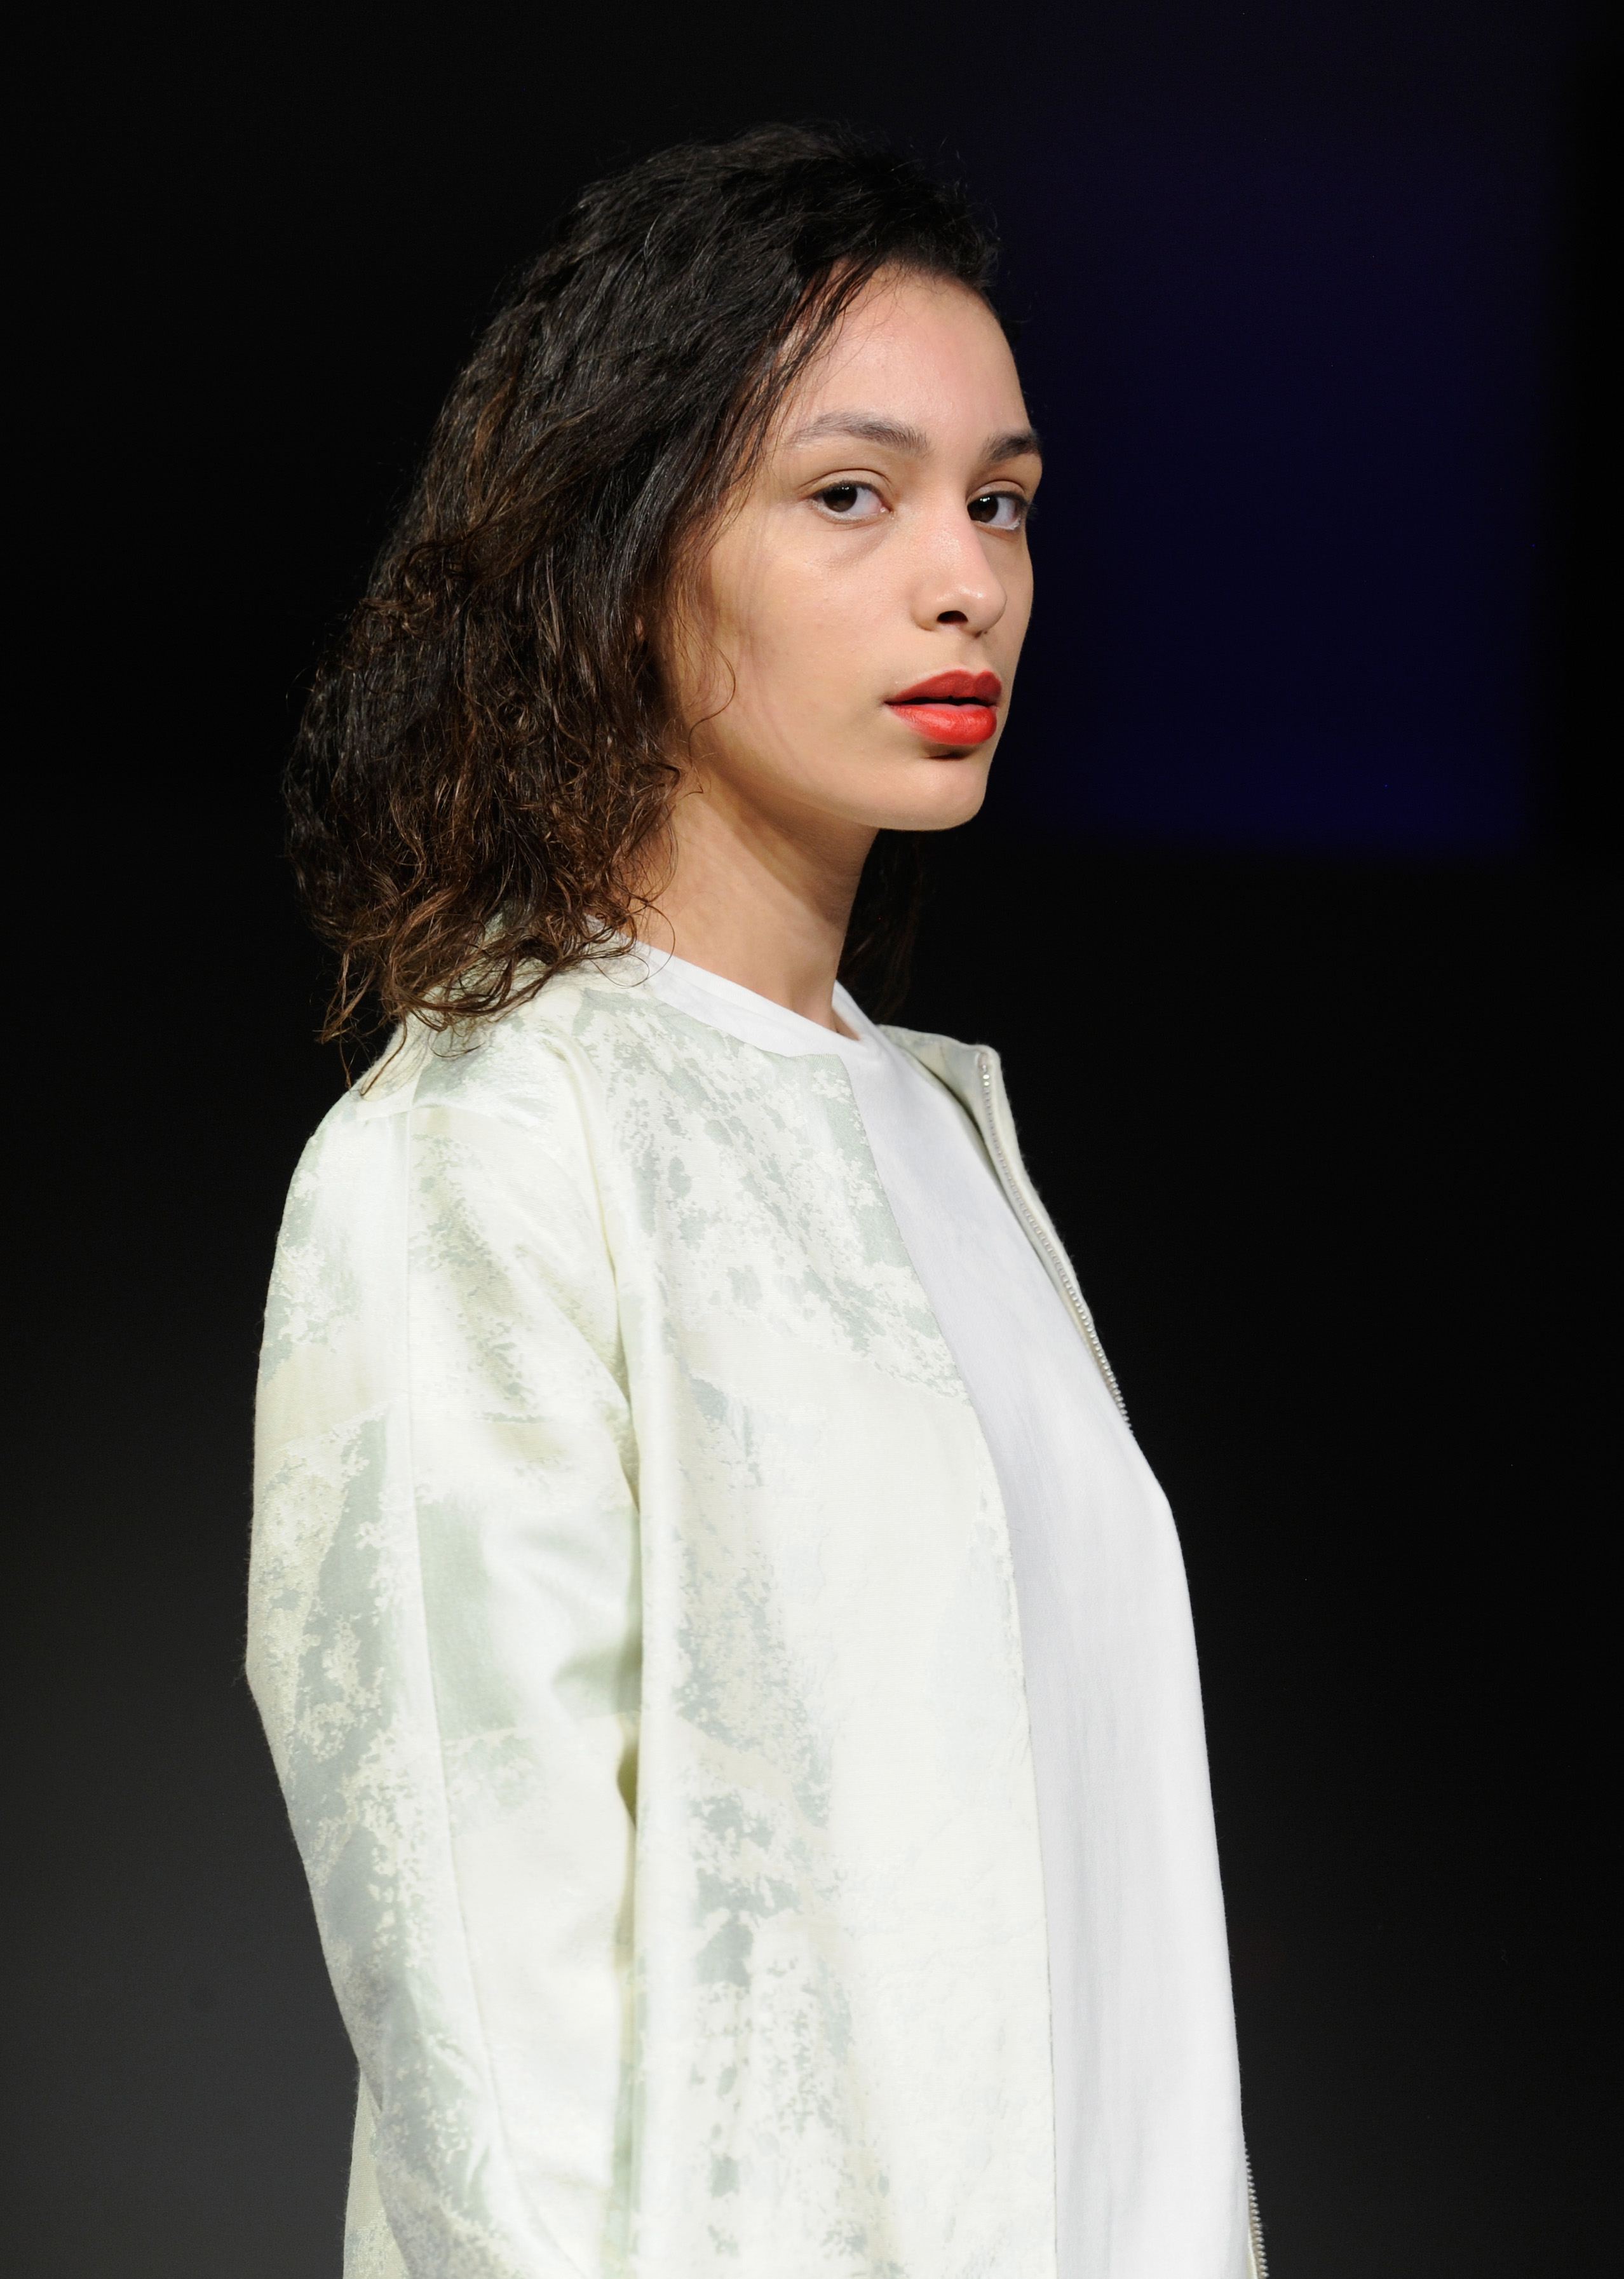 VANCOUVER, BC - MARCH 21:  A model walks the runway wearing Keem at Vancouver Fashion Week Fall/Winter 2017  at Chinese Cultural Centre of Greater Vancouver on March 21, 2017 in Vancouver, Canada.  (Photo by Arun Nevader/WireImage)